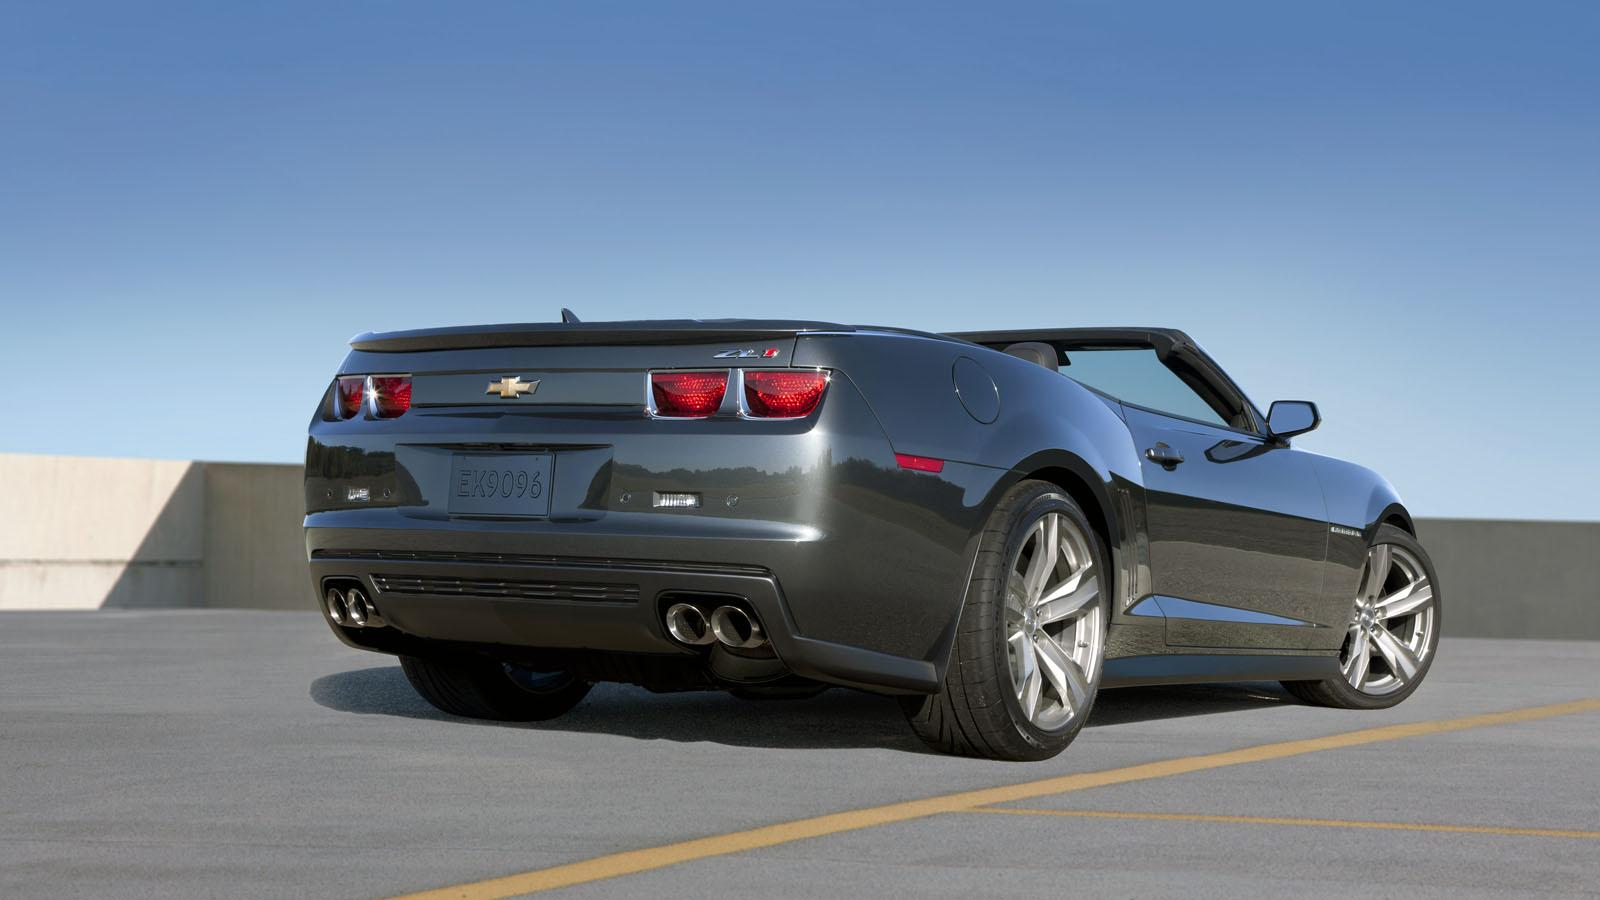 2013 Chevrolet Camaro ZL1 Convertible Picture #4 of 4